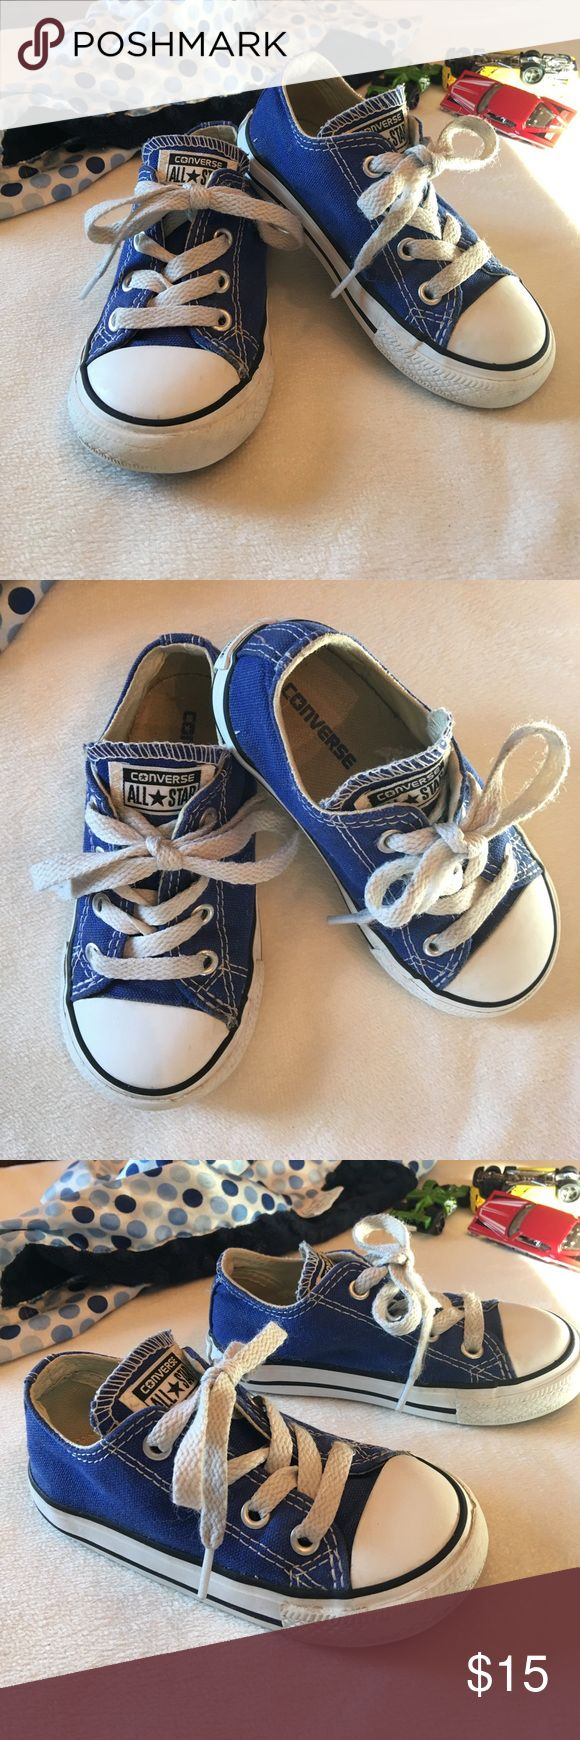 Converse All Star - Toddler 7 Super fly chucks for your super fly toddler!  Size 7, in good shape but needs new laces. Converse Shoes Sneakers